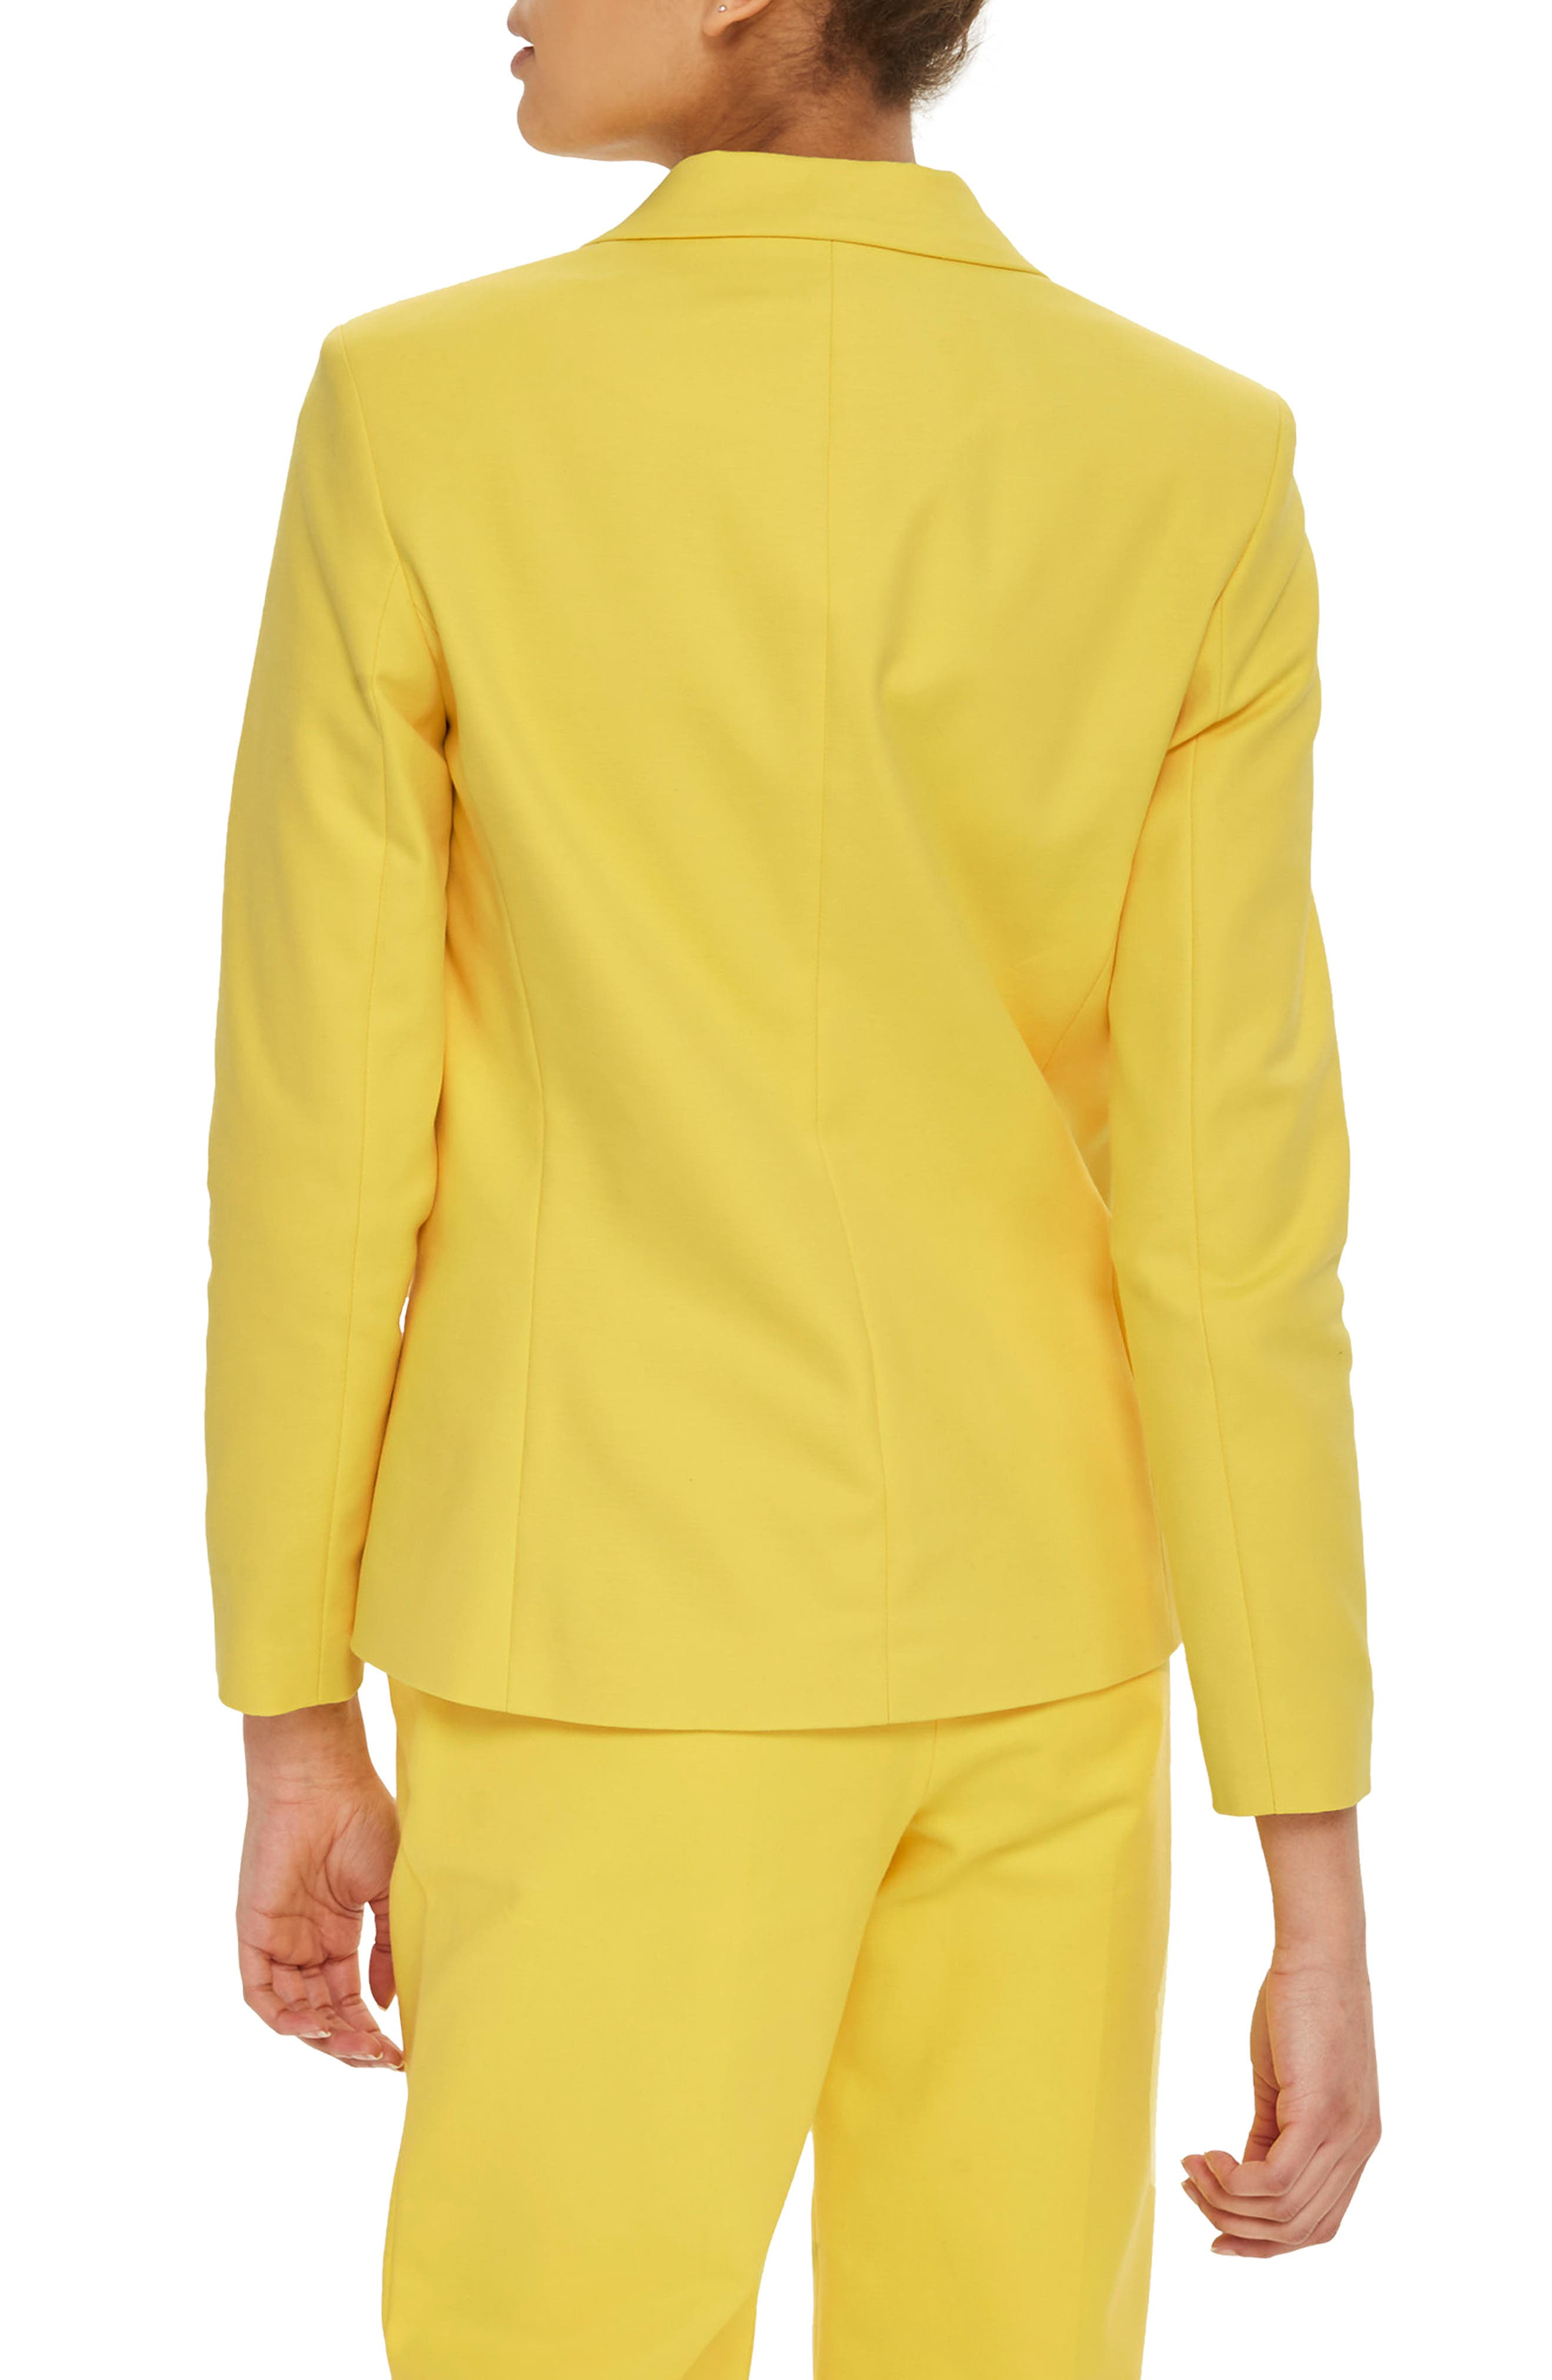 Milly Double Breasted Suit Jacket,                             Alternate thumbnail 3, color,                             Yellow